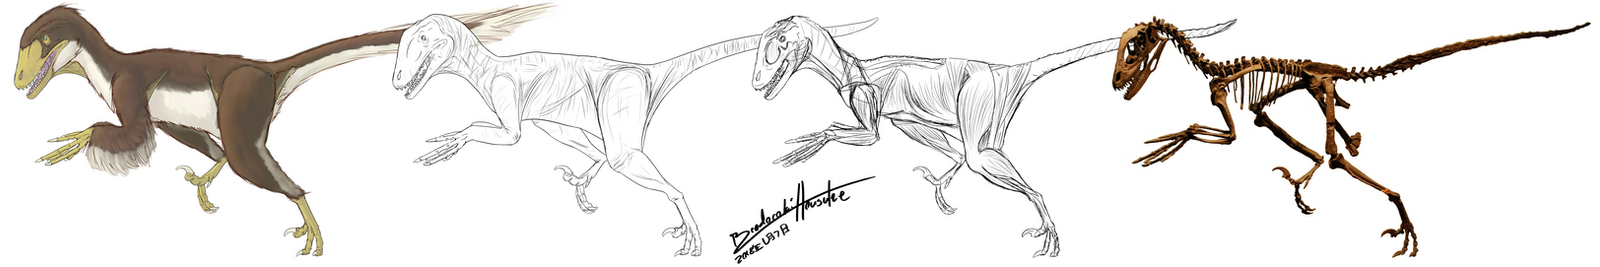 Deinonychus Speculative Full-Body Sketches by BrodorokiHousuke